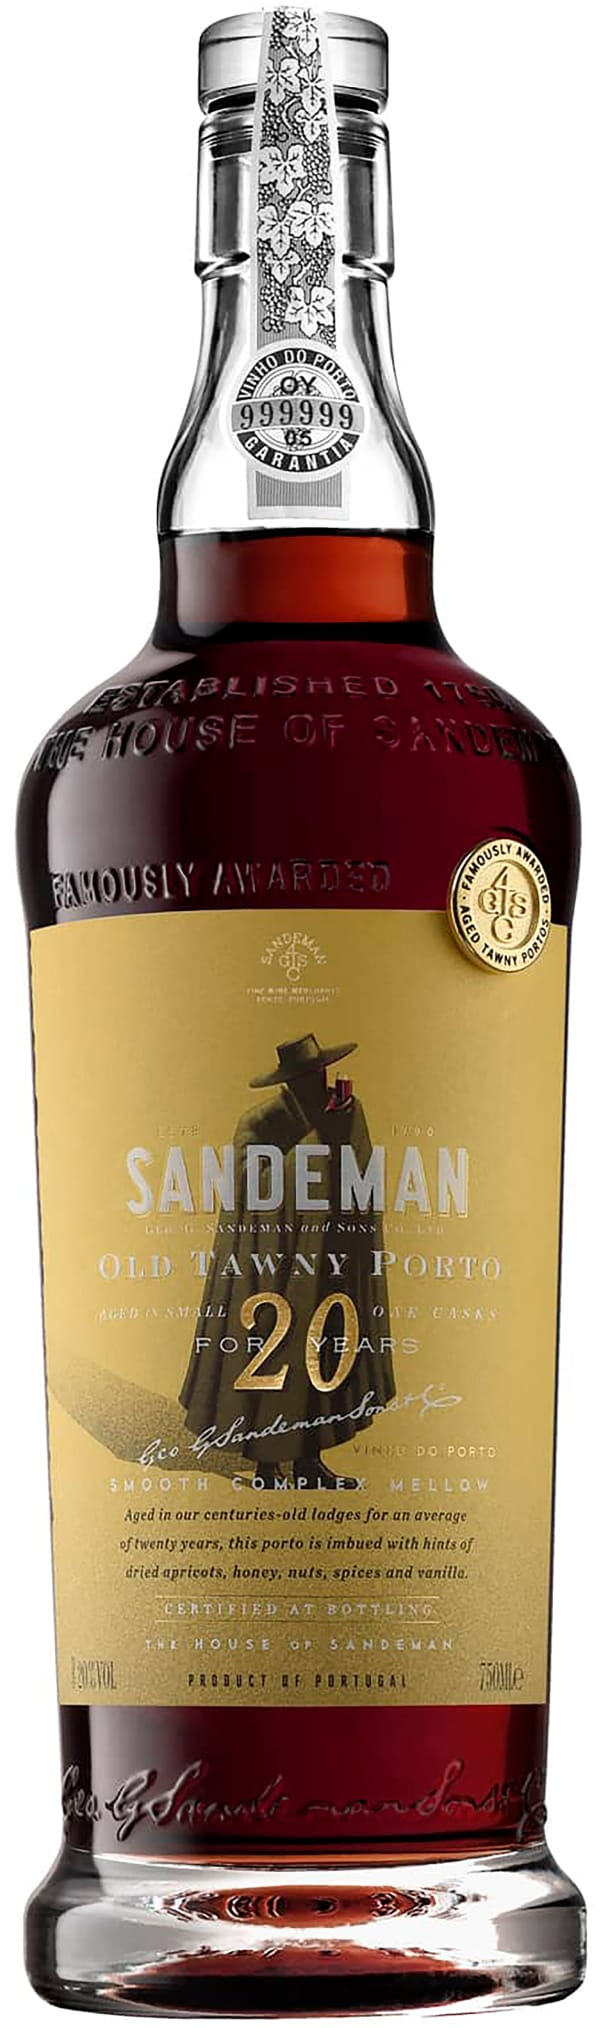 Sandeman 20 Years Old Tawny Port